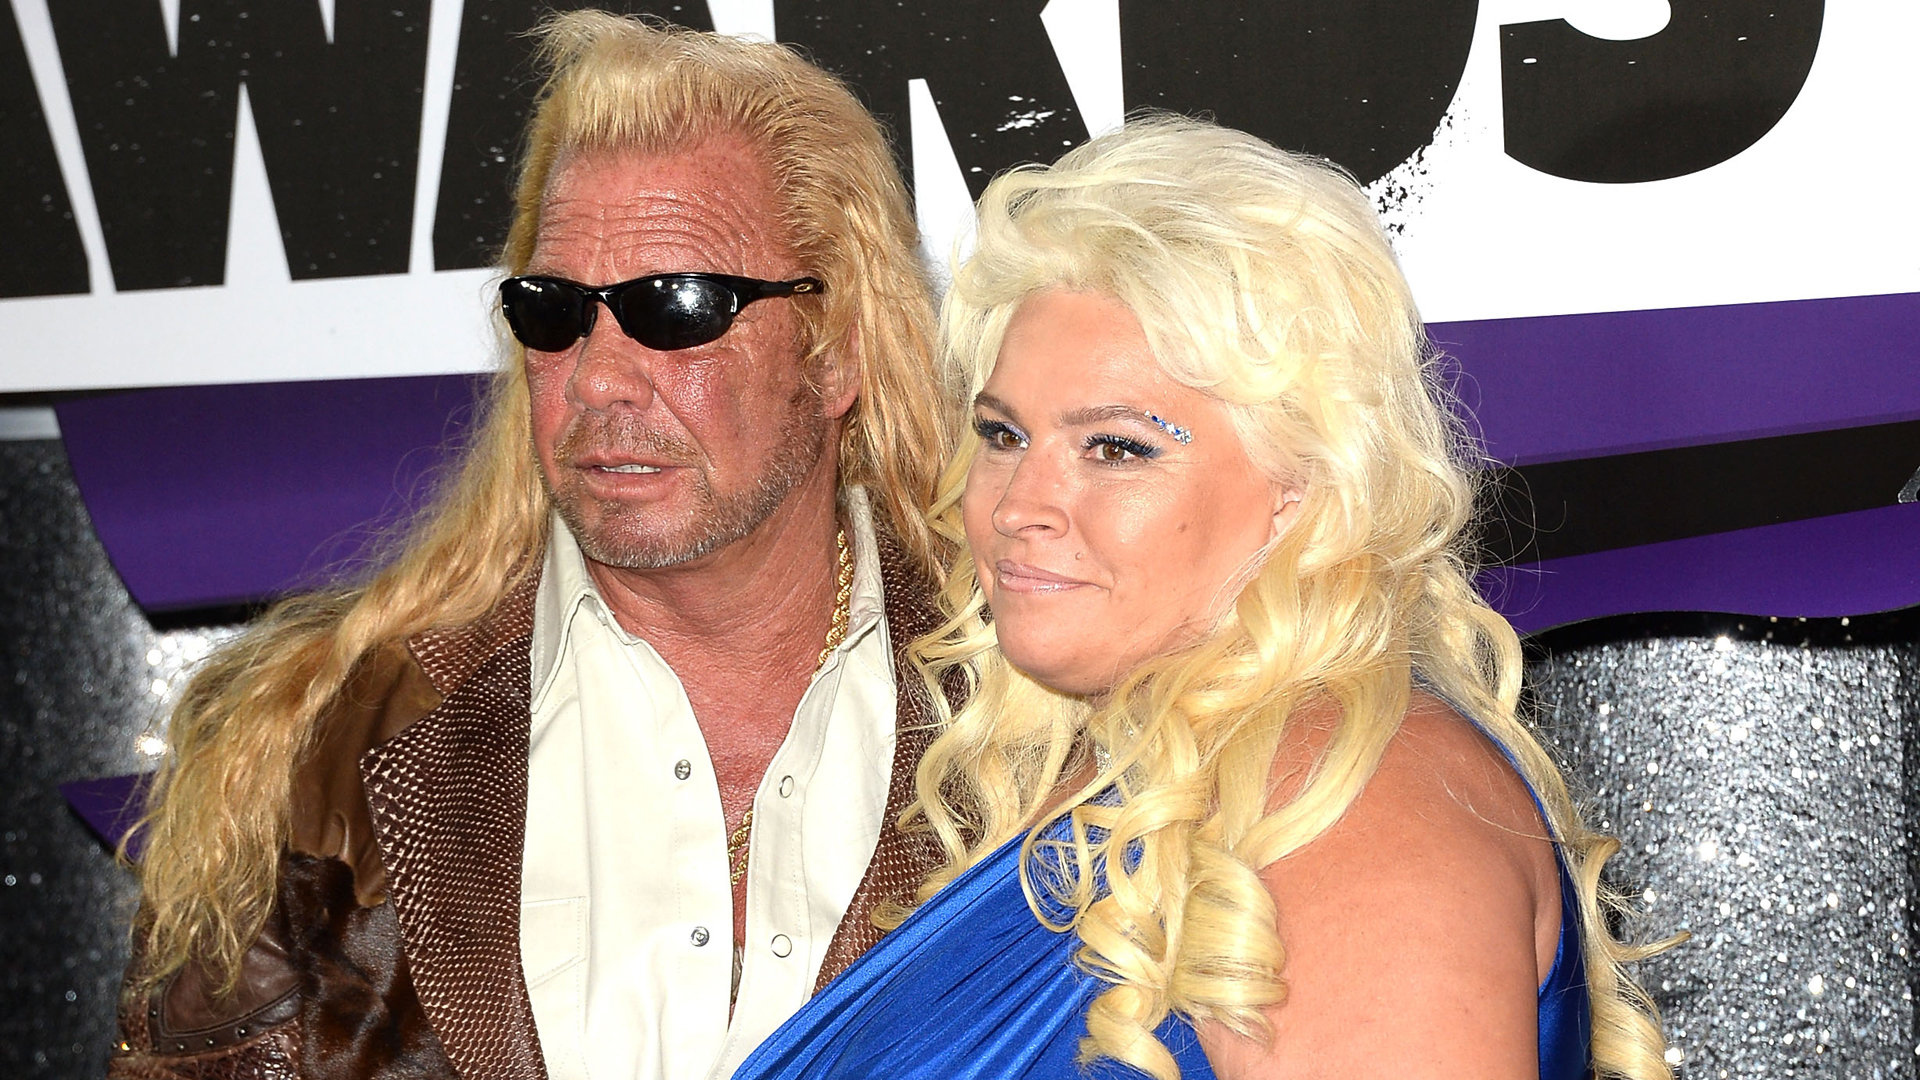 """Dog the Bounty Hunter"" stars Duane Chapman and Beth Chapman attend the 2013 CMT Music awards at the Bridgestone Arena on June 5, 2013 in Nashville. (Credit: Jason Merritt/Getty Images)"